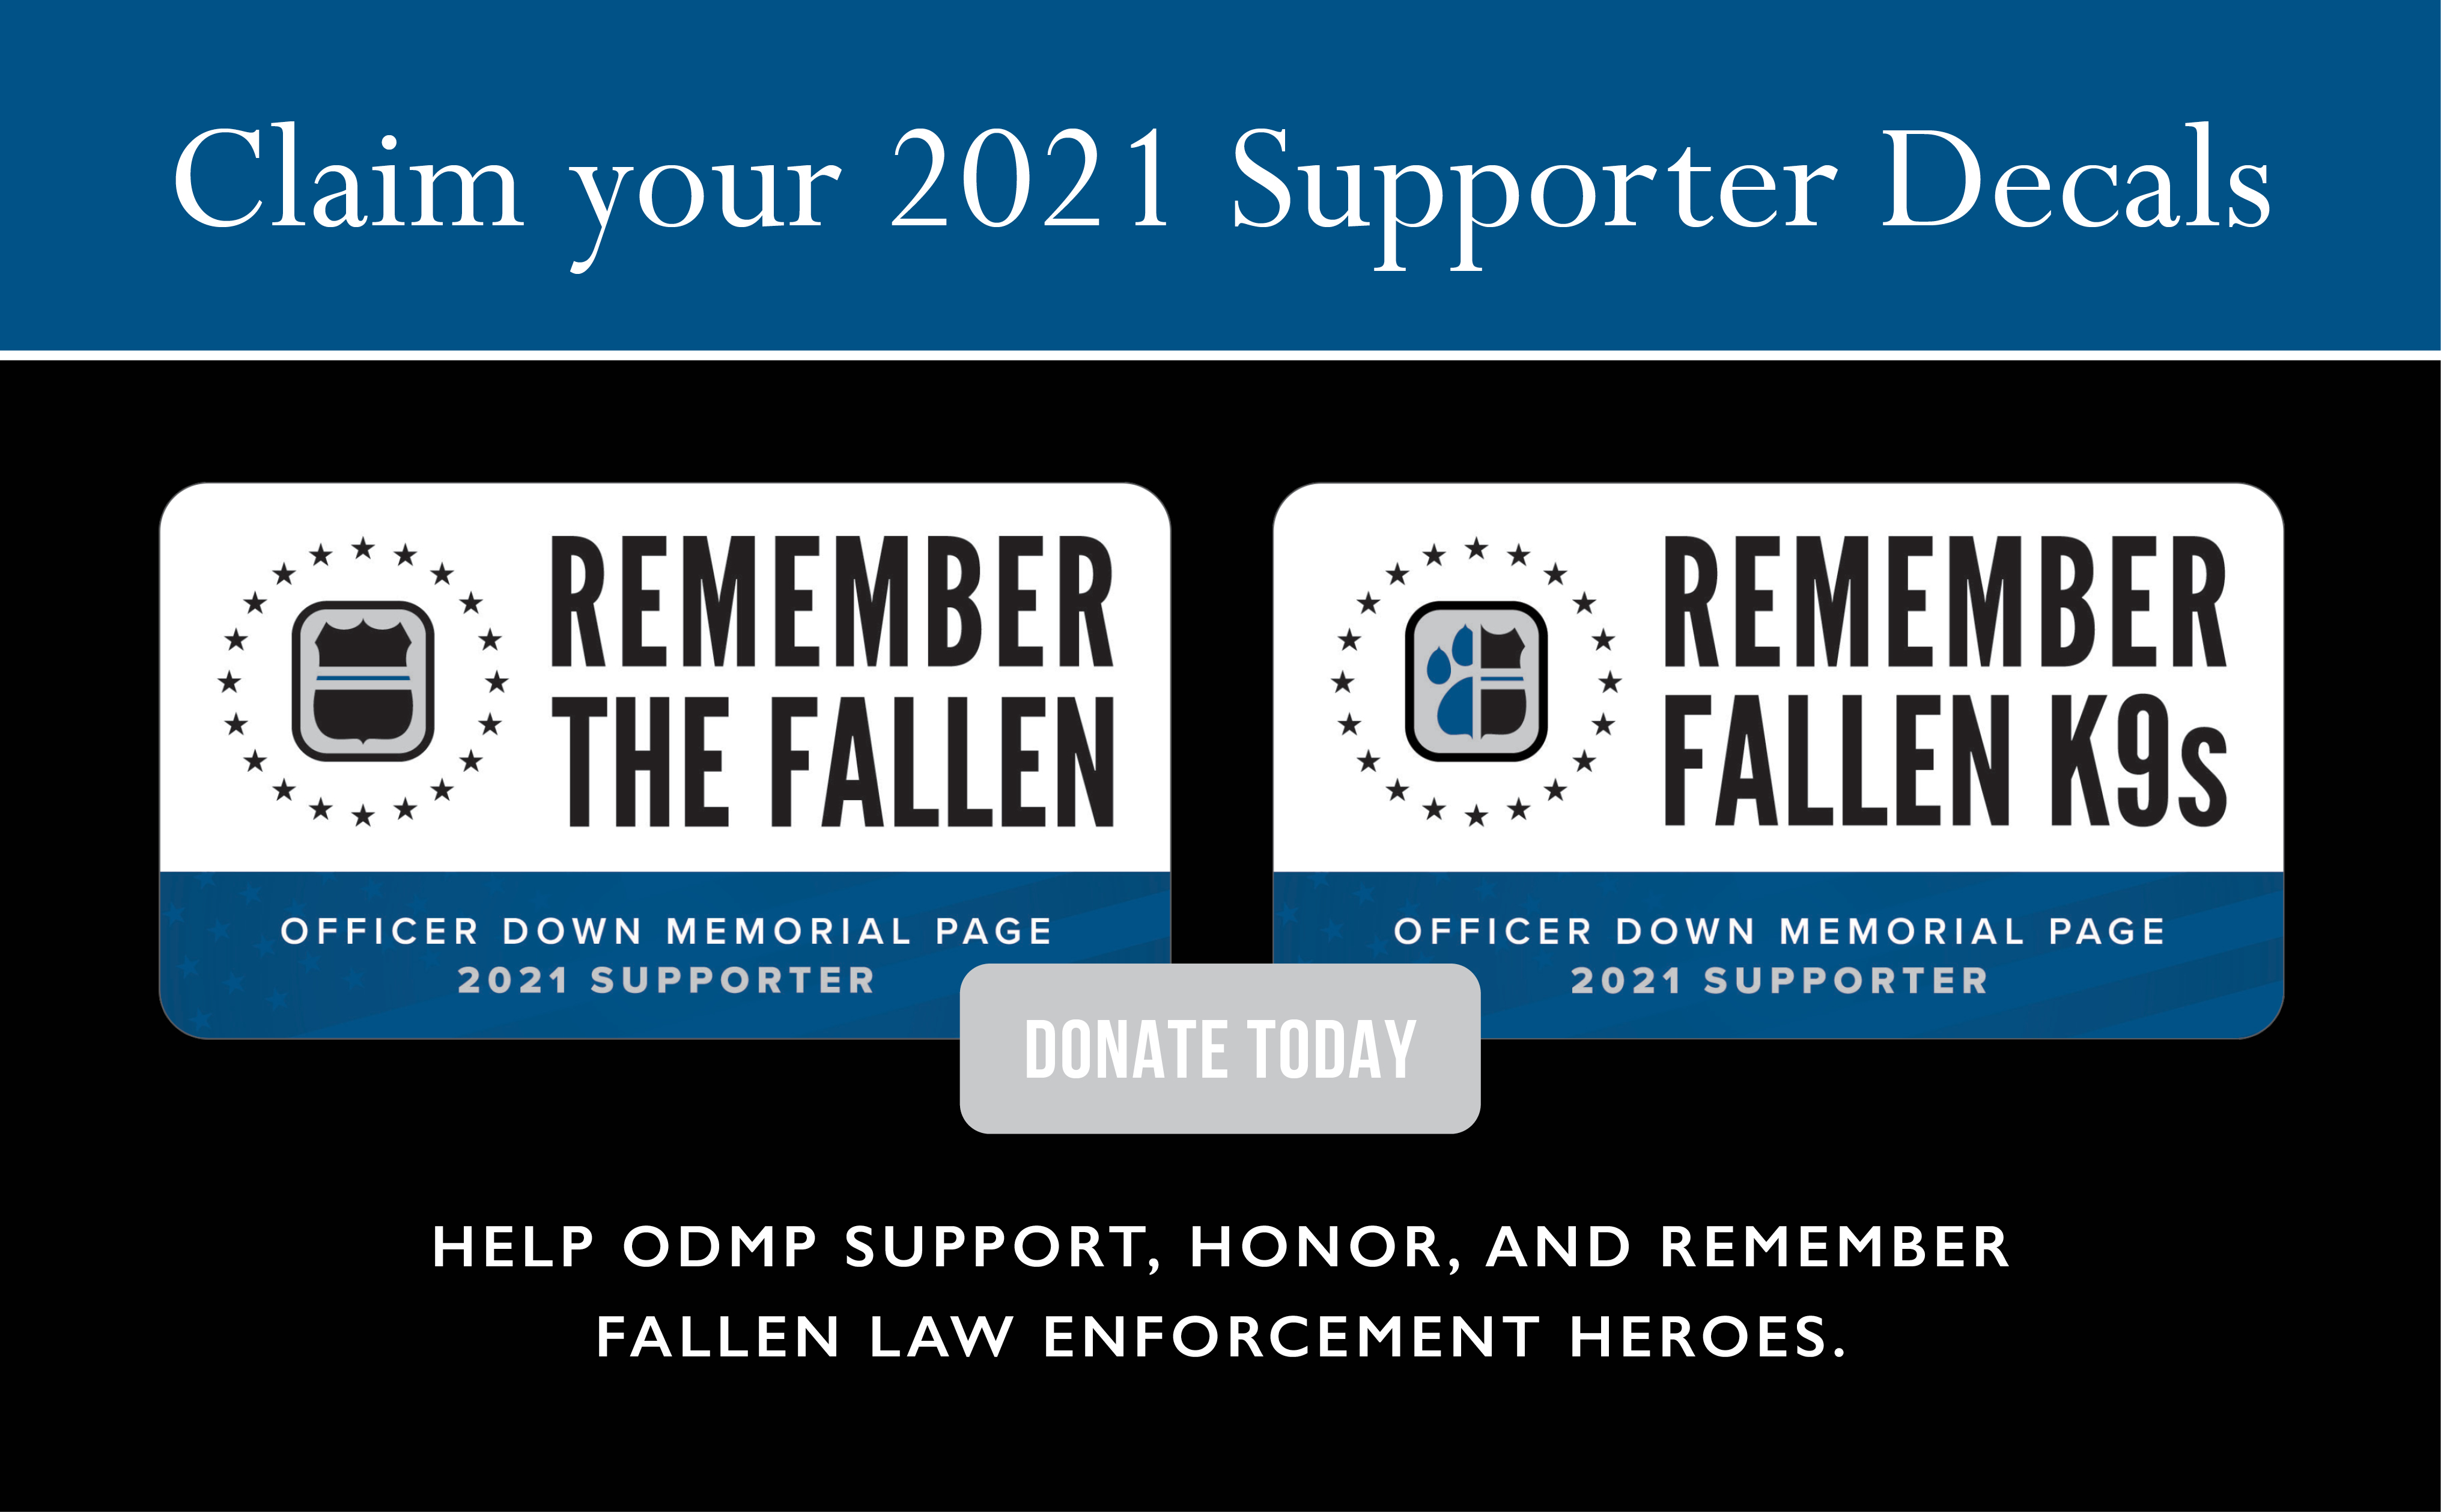 Donate to ODMP